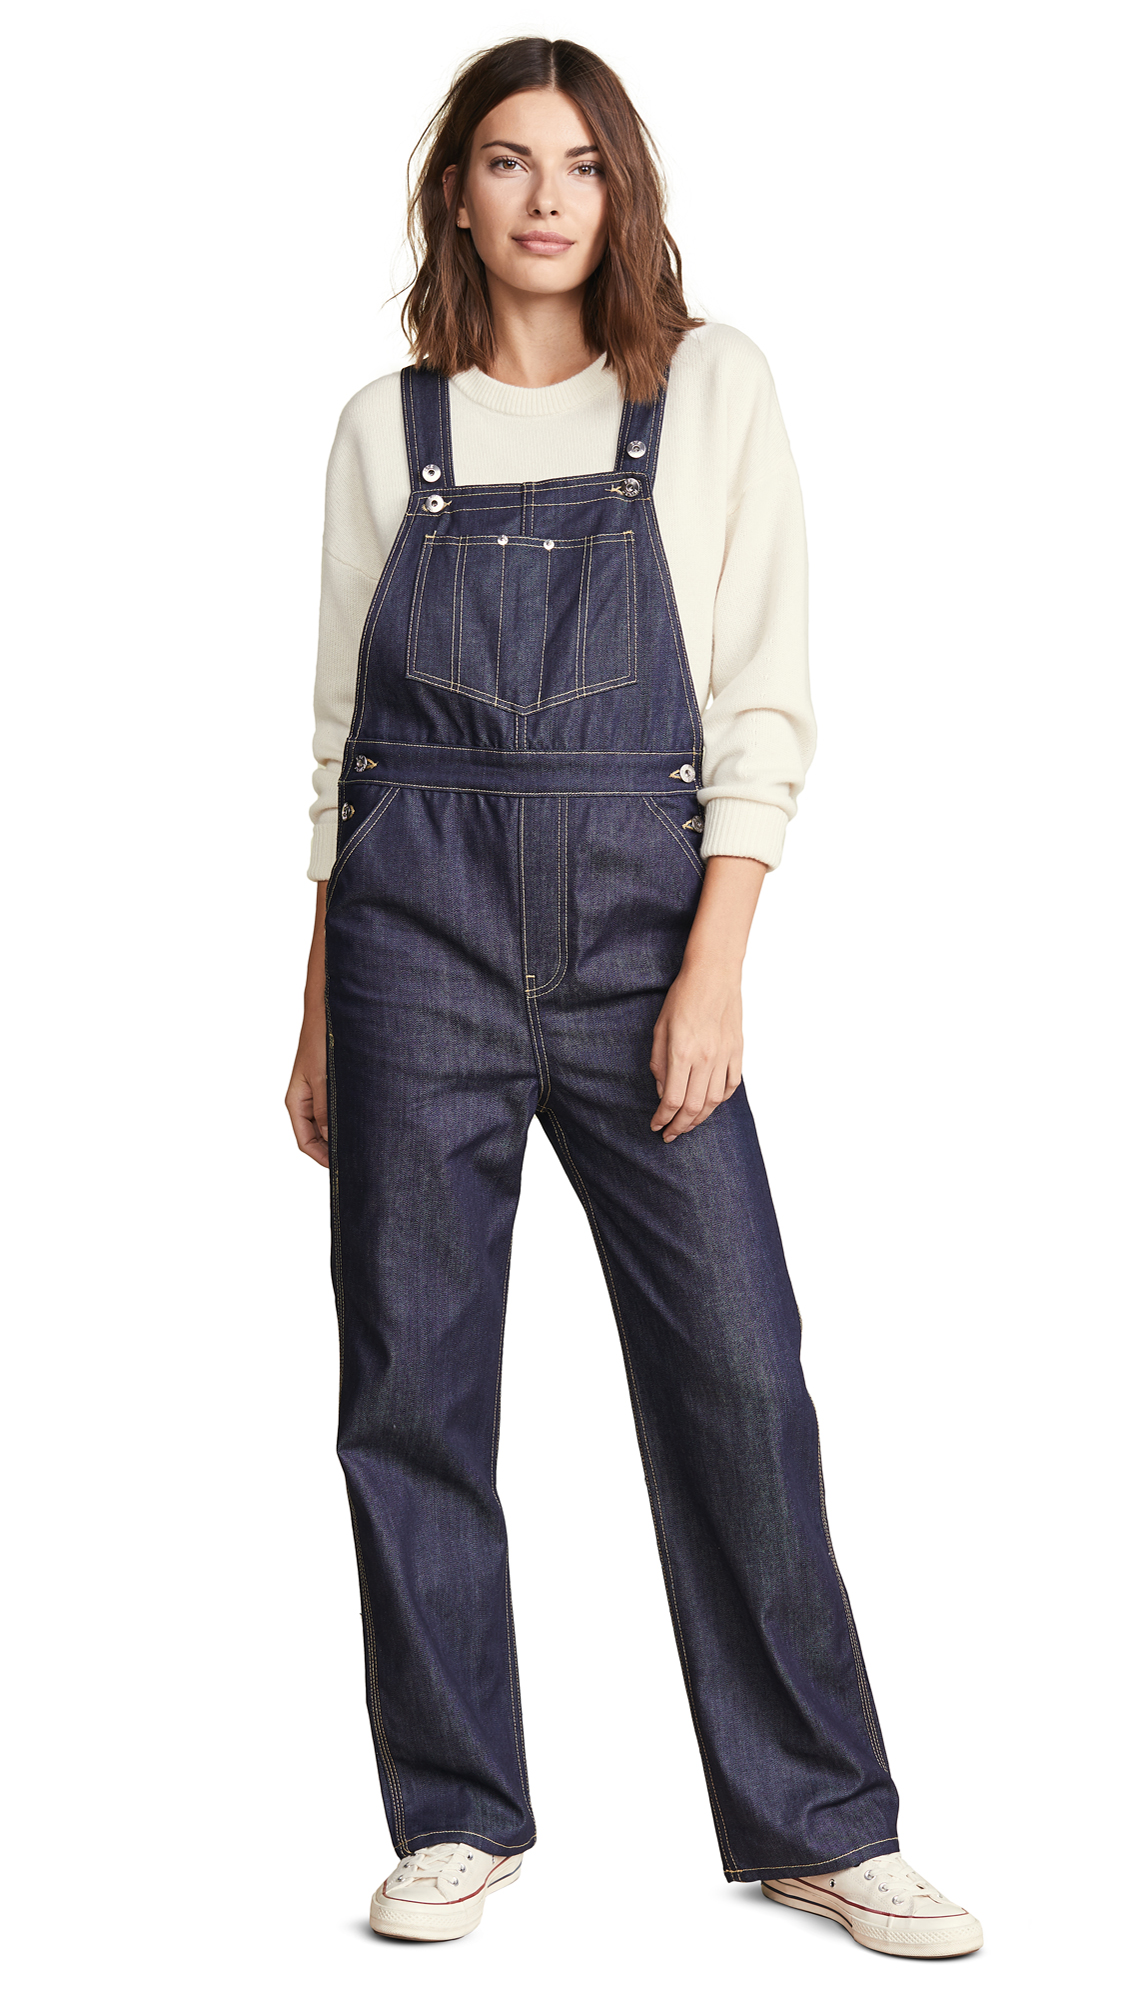 Eve Denim The Olympia Overalls